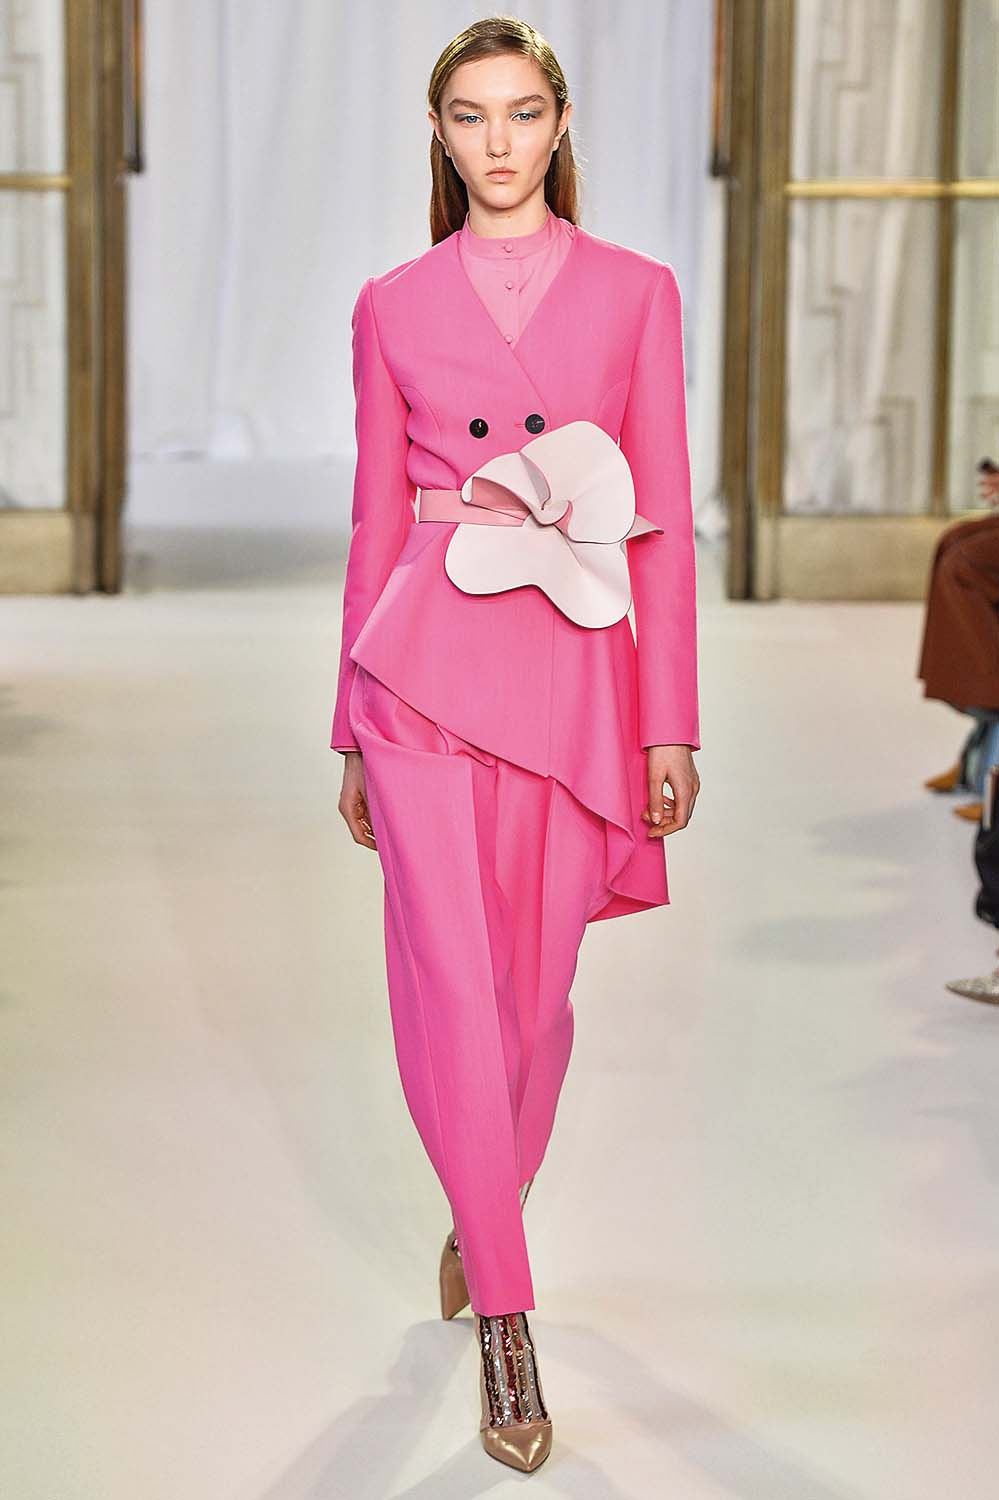 LONDON, ENGLAND - FEBRUARY 18:  A model walks the runway at the Delpozo Autumn Winter 2018 fashion show during London Fashion Week on February 18, 2018 in London, United Kingdom.  (Photo by Catwalking/Getty Images)